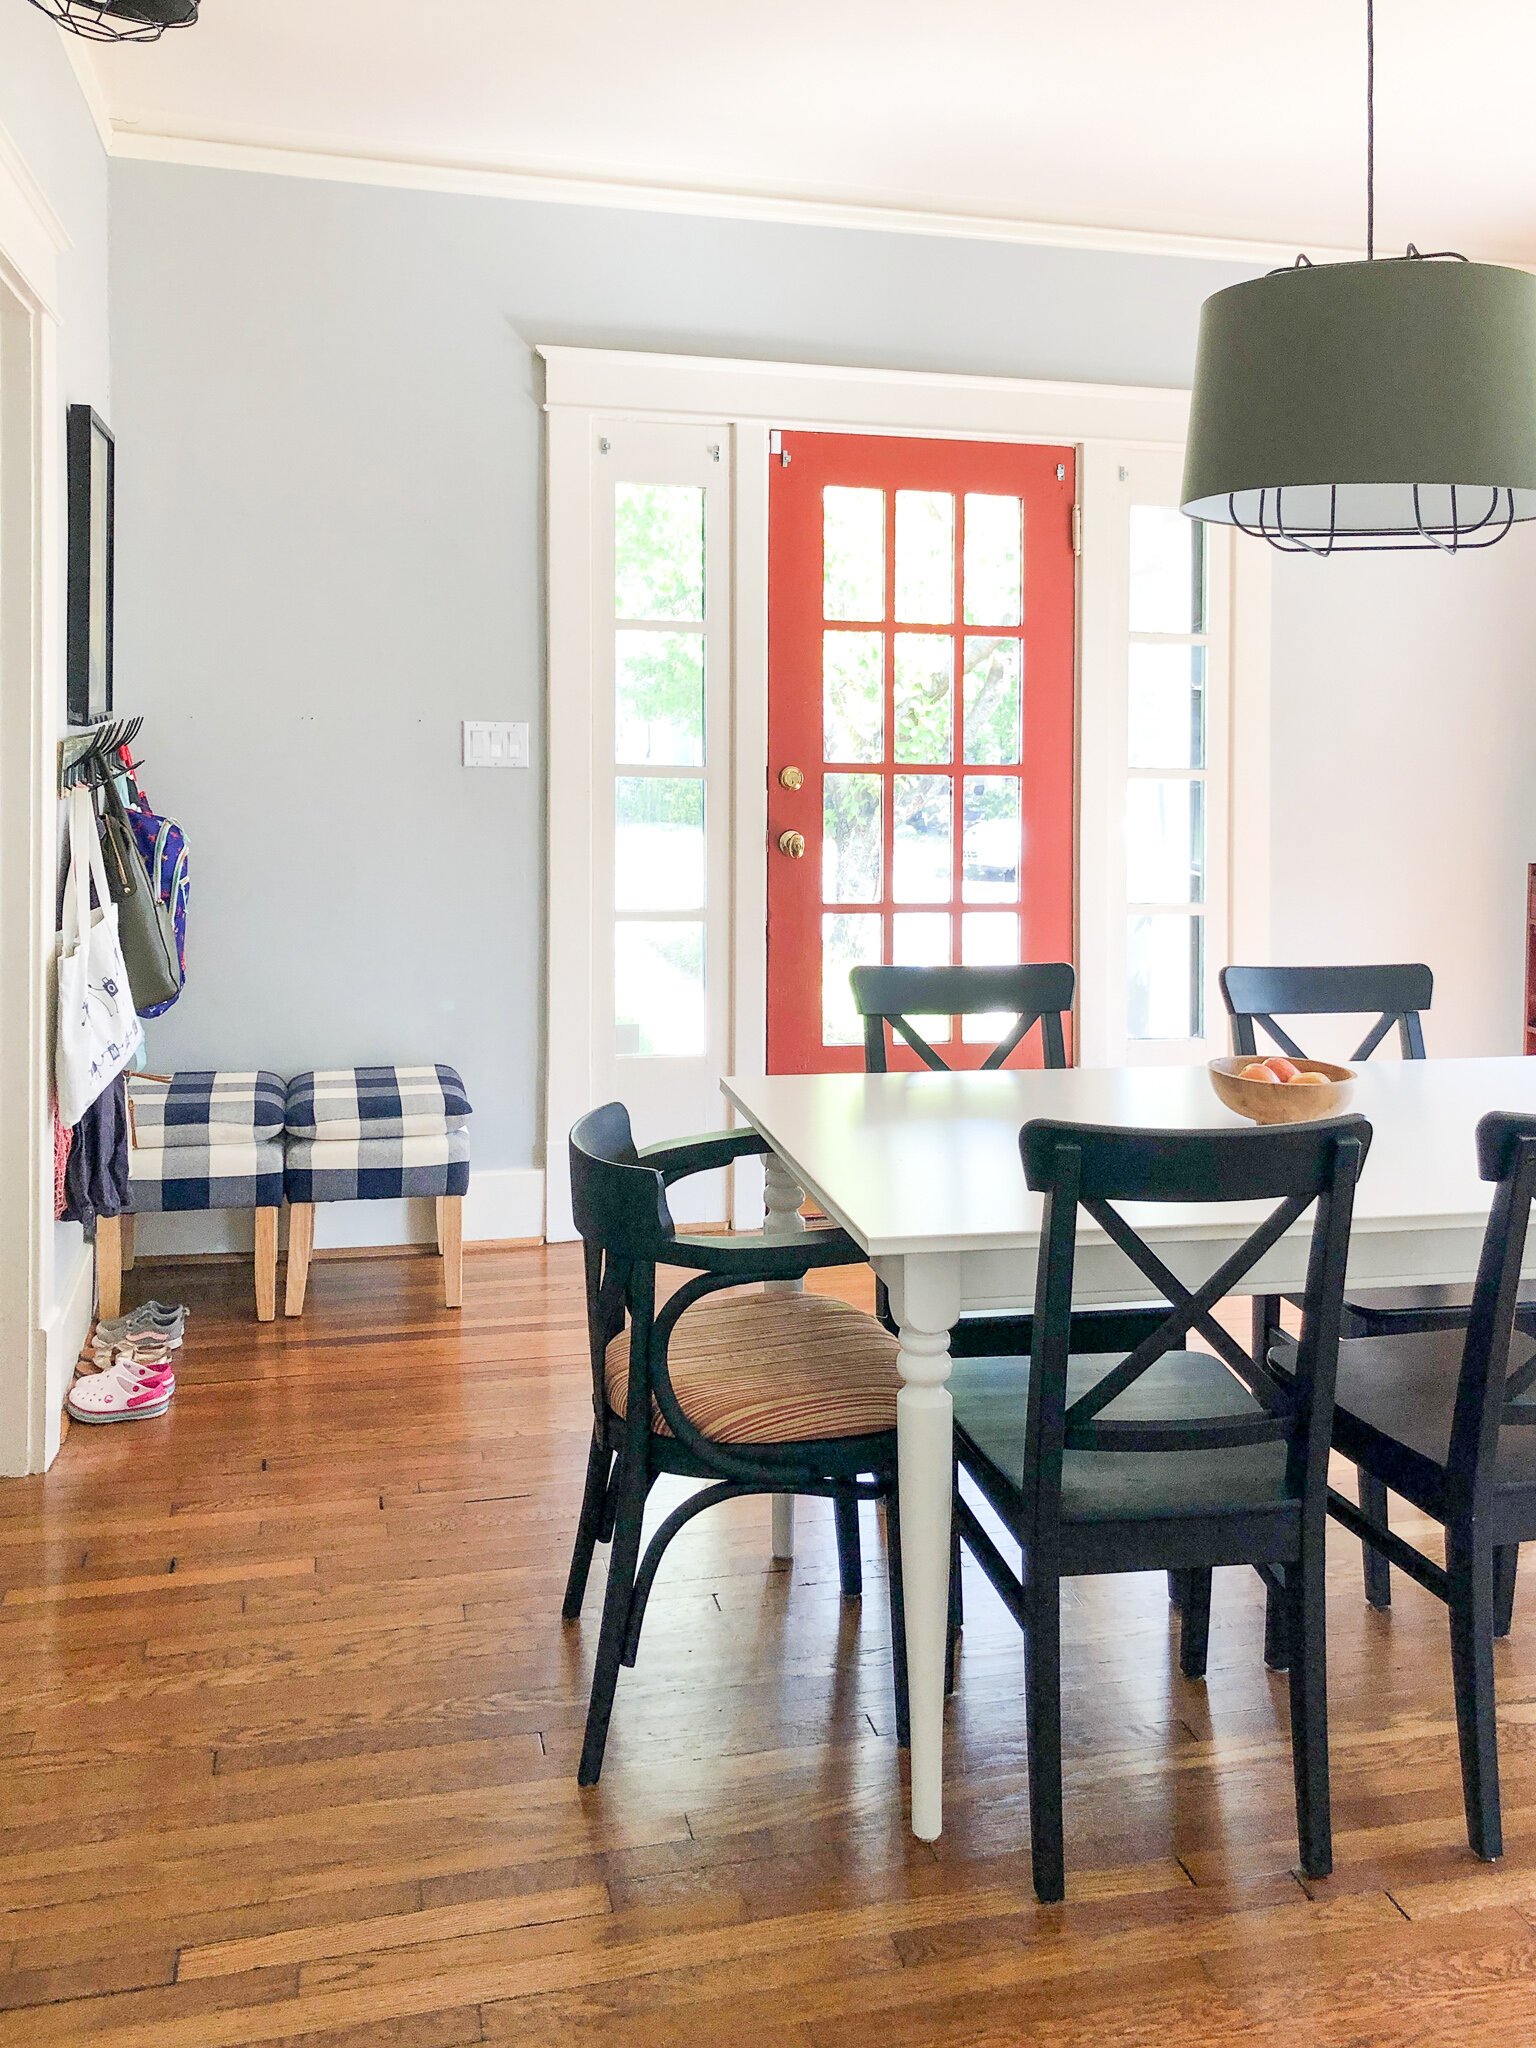 Schoolhouse Style Lighting - This California Bungalow boasts a family-friendly decor style with vintage accents and modern cottage interiors.